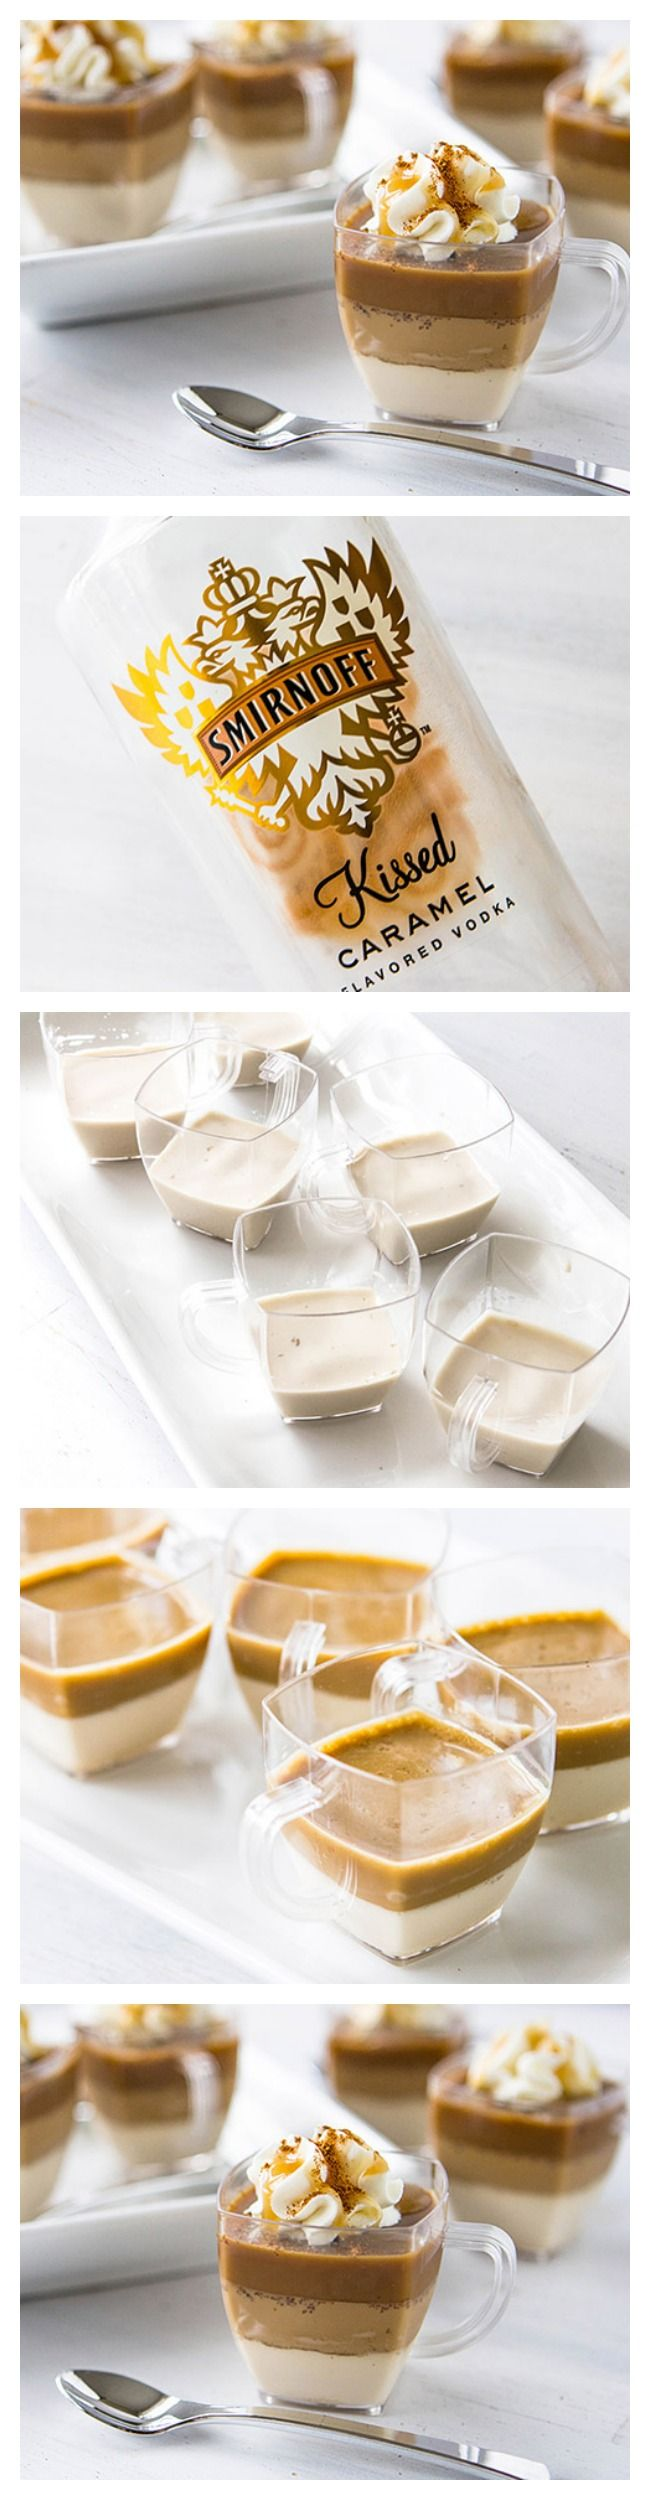 Caramel Macchiato Jelly Shots. Recipes -> http://www.ilgilibilgili.com/en/category/food-drink